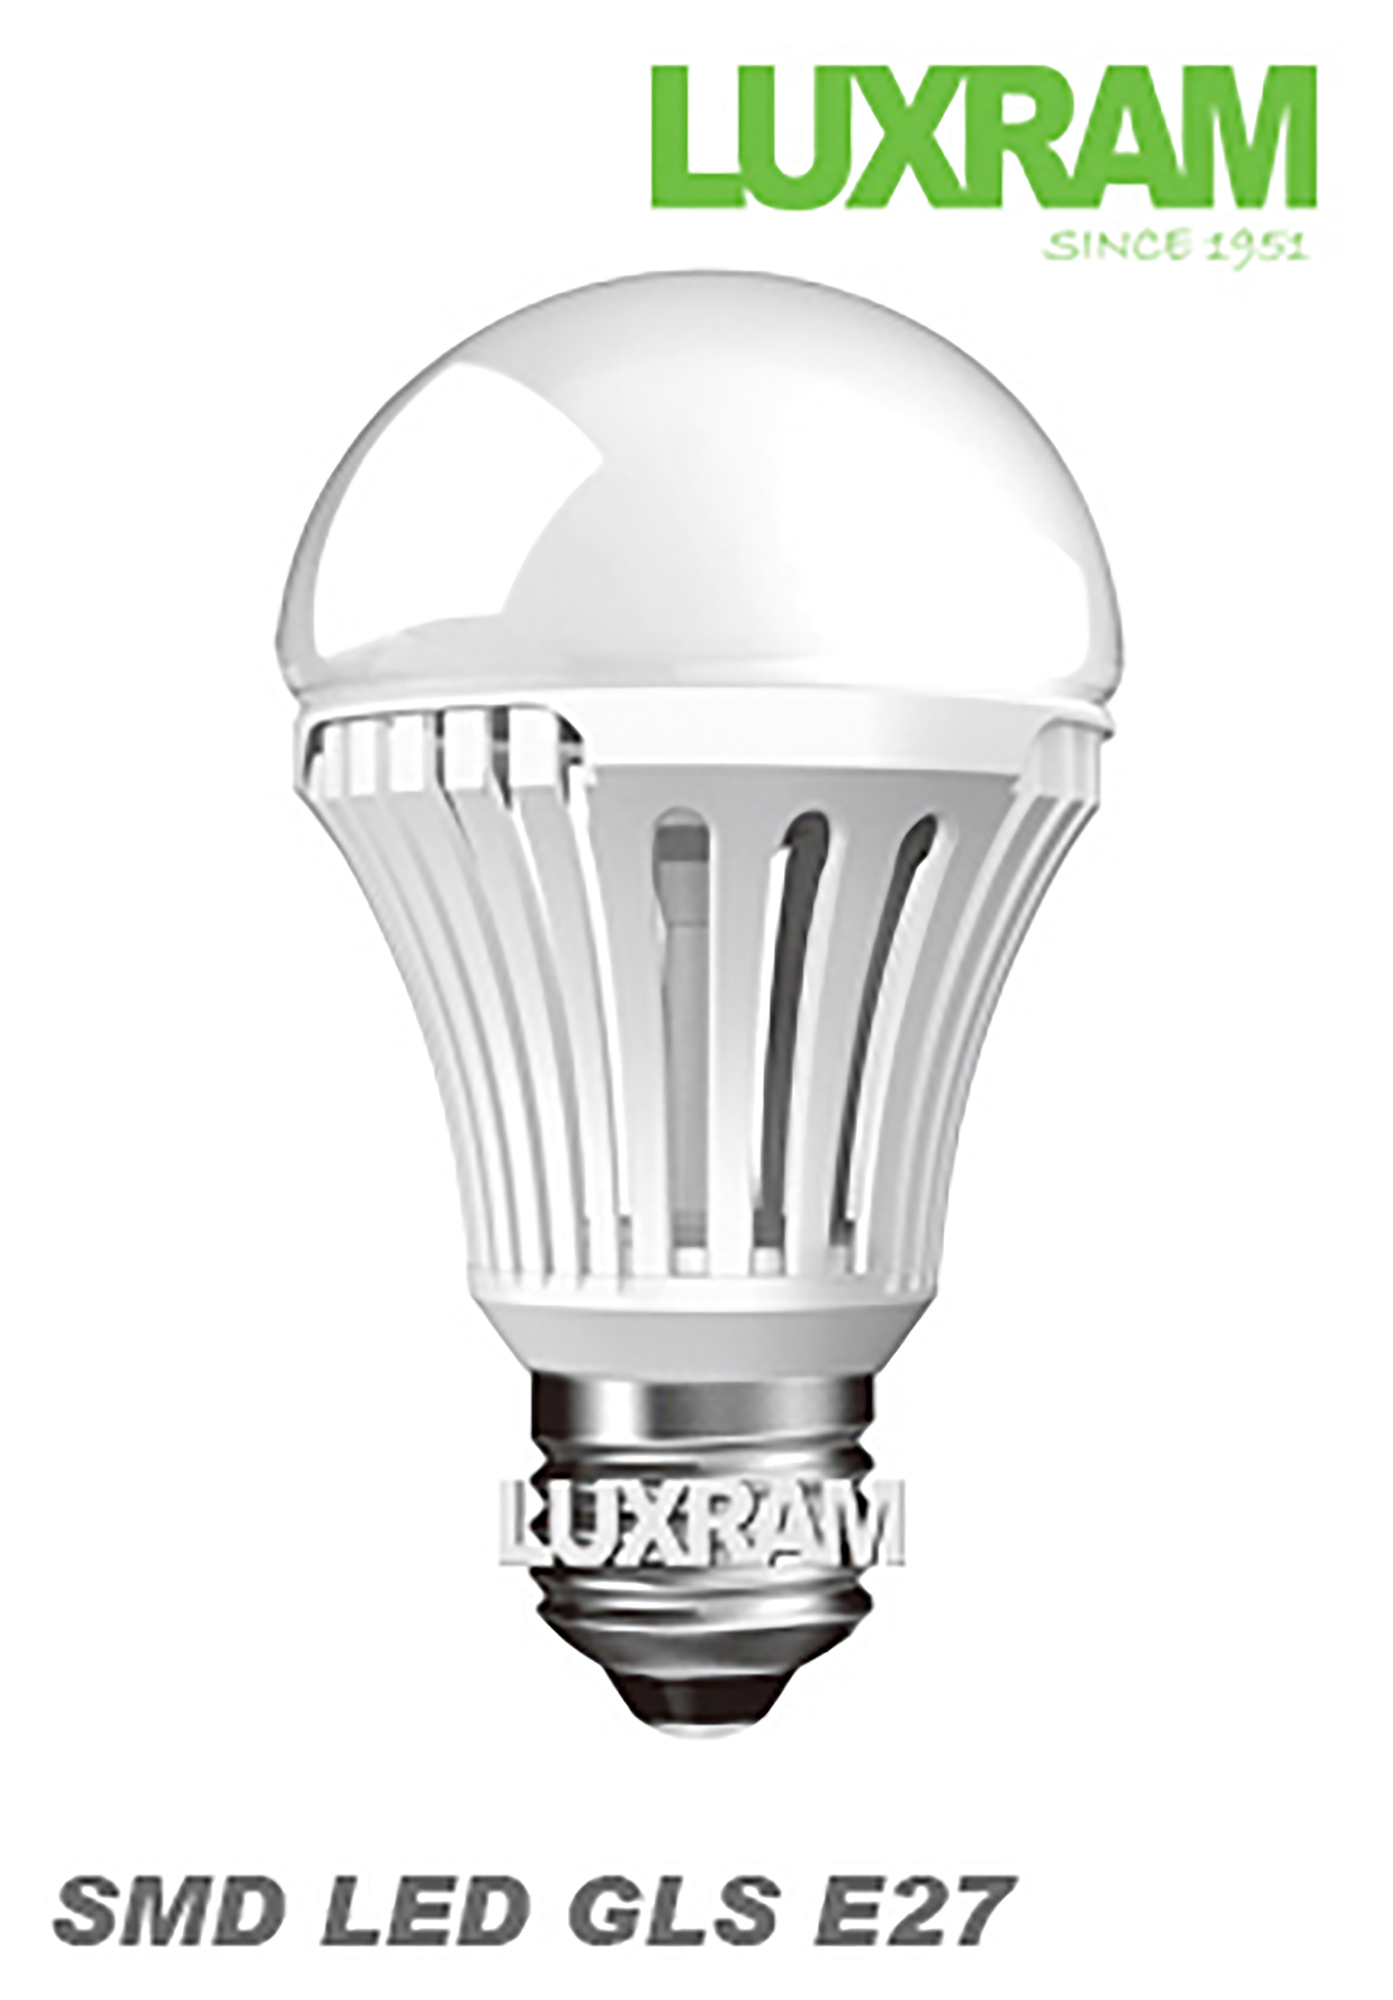 Power SMD LED Lamps Luxram GLS